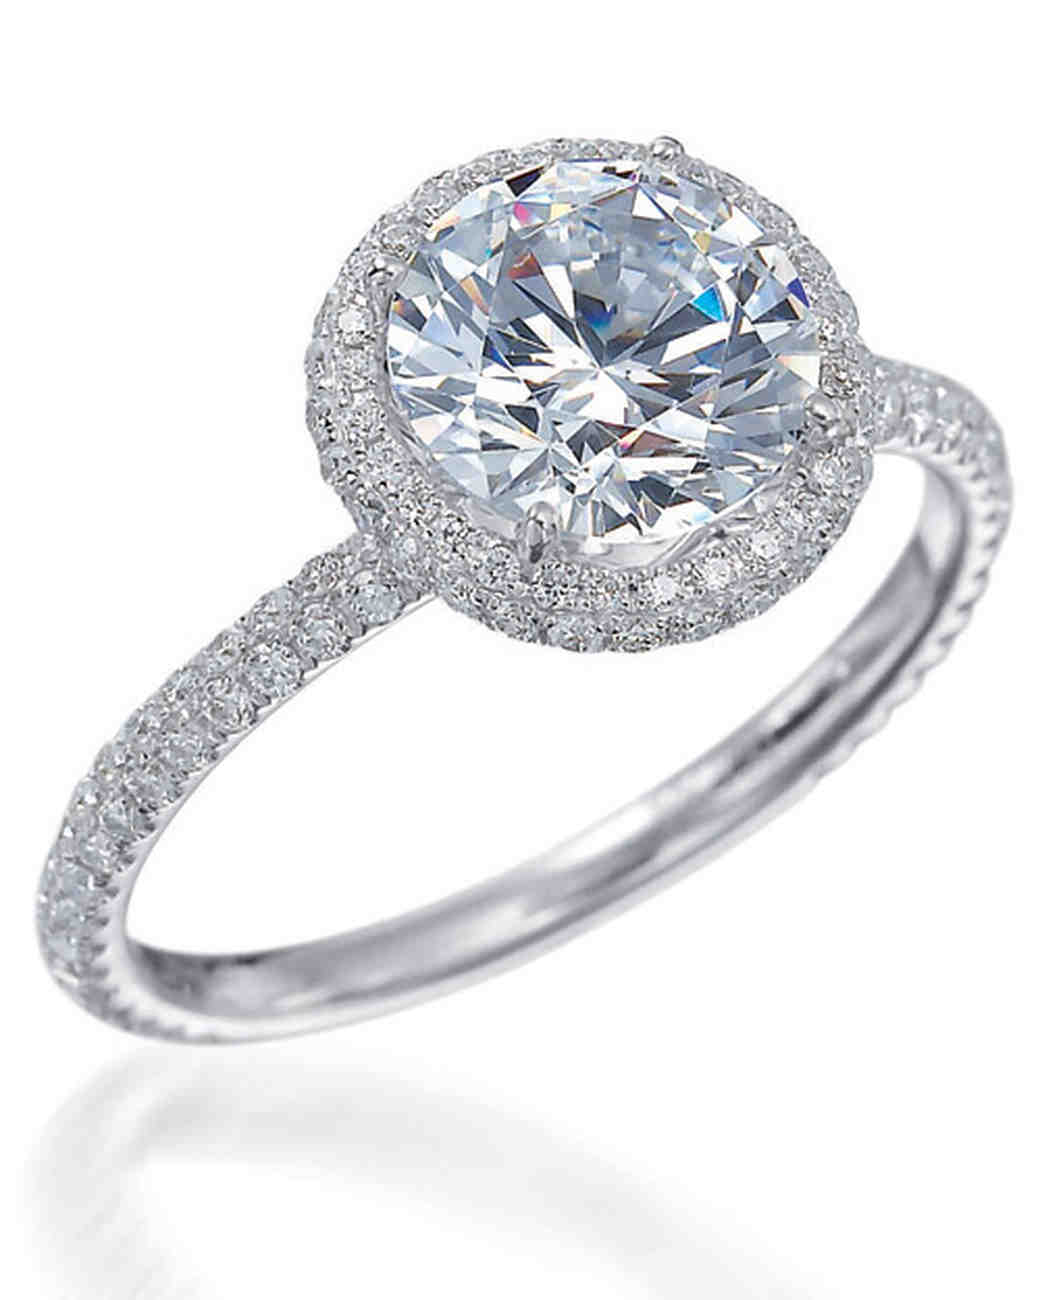 rings band carat diamond really nice wedding a regarding and delicate solitaire the love i